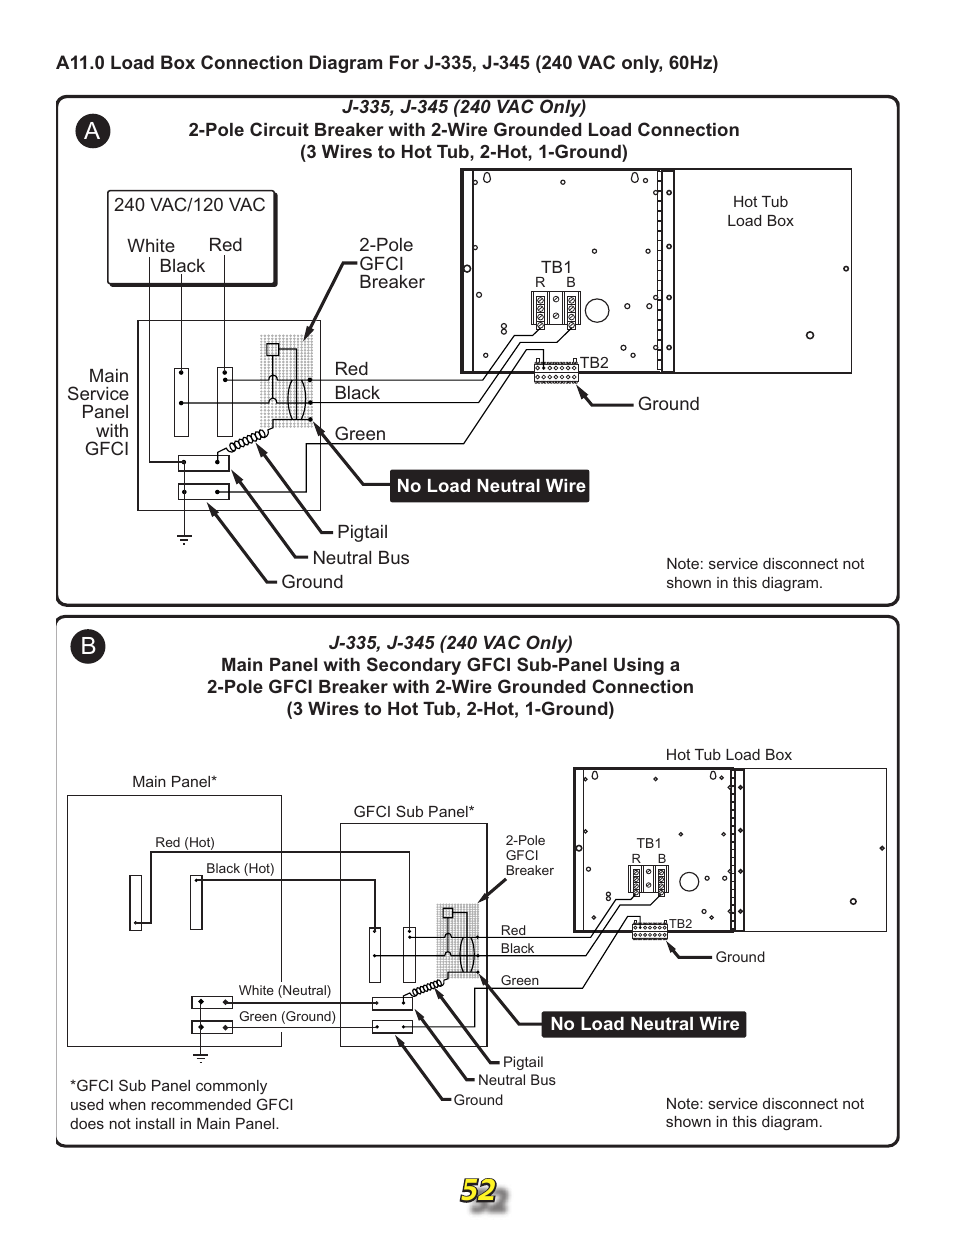 A11.0 load box connection diagrams | Jacuzzi j315 User ... on